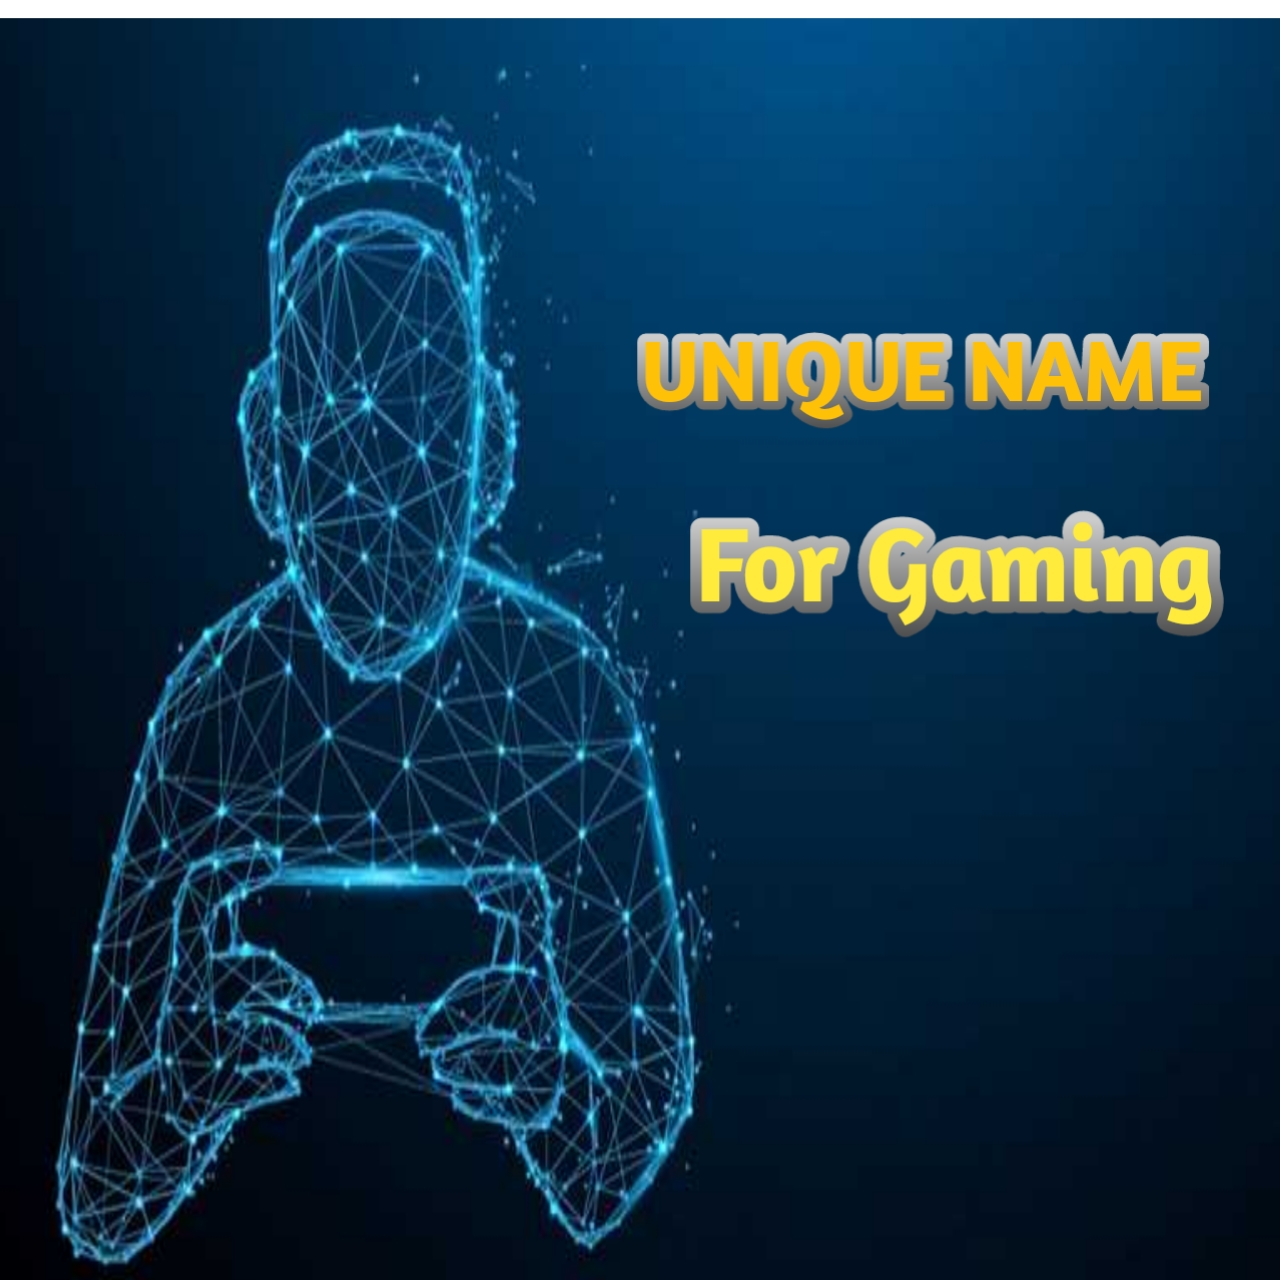 Unic Name for Gaming